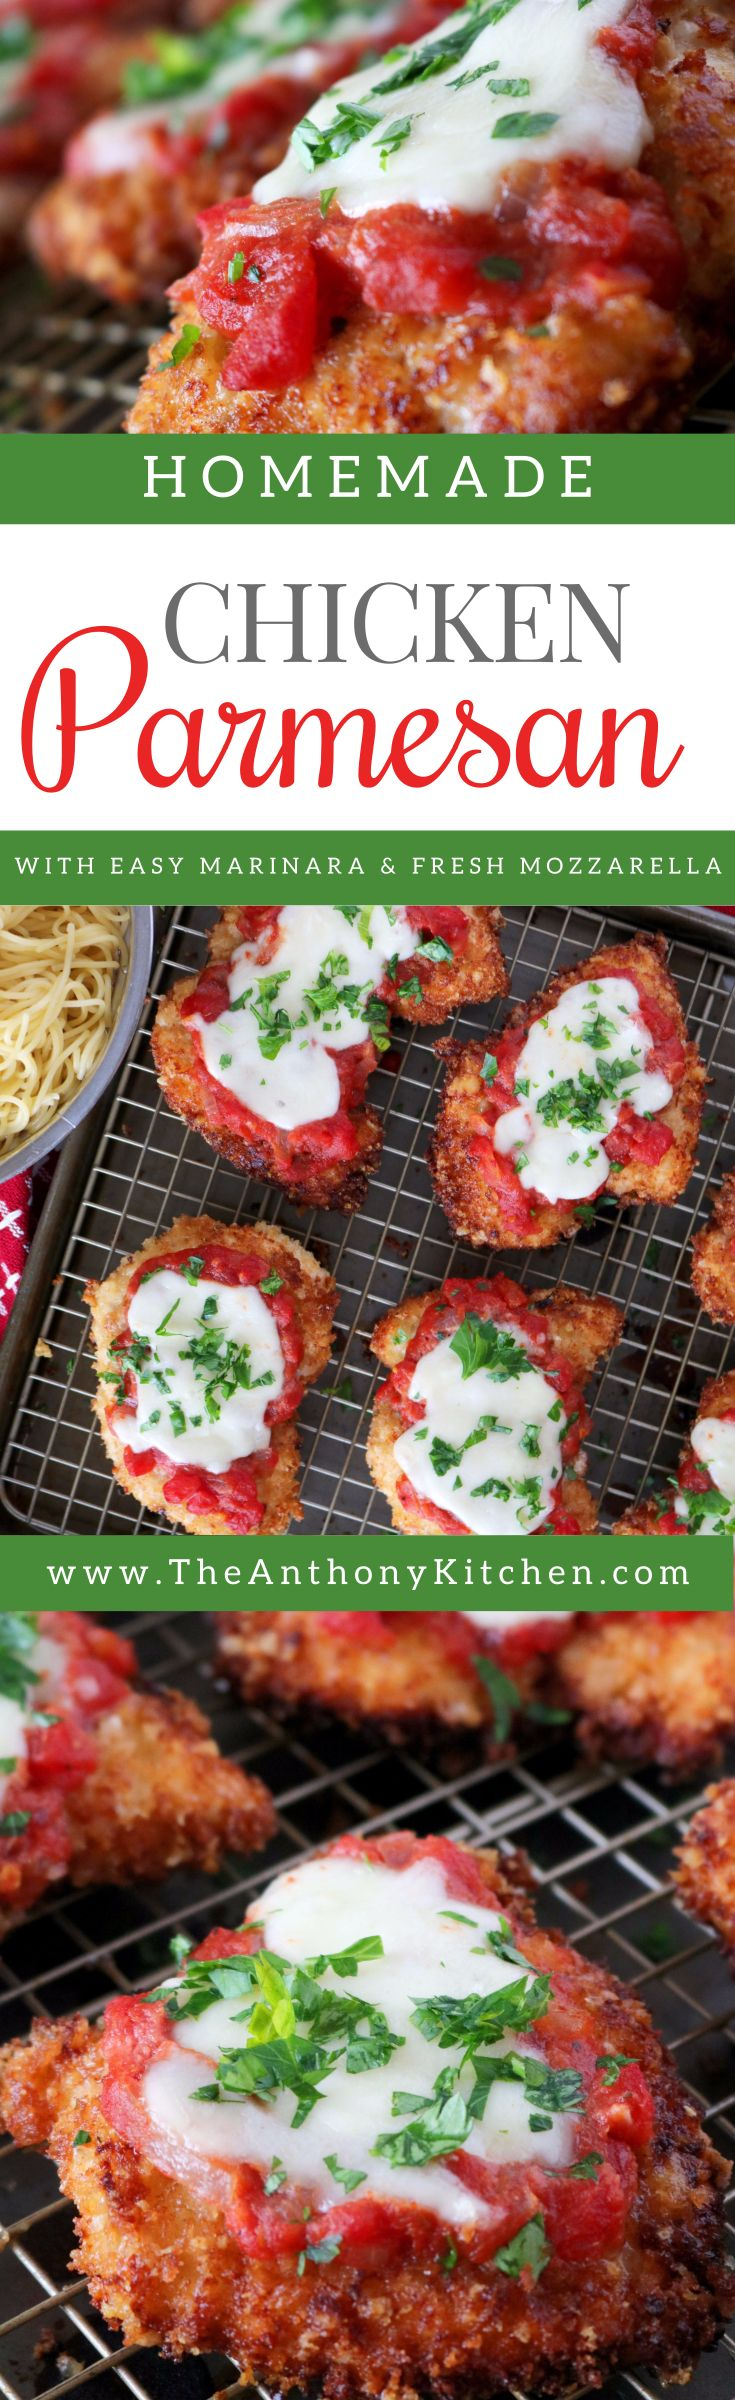 Best Chicken Parmesan | Homemade chicken parmesan featuring a crust made of panko bread crumbs mixed with Parmesan cheese. Topped with marinara and fresh Mozzarella | #easychickenparmesan #familydinneridea #chickendinnerrecipe #bestchickenrecipe